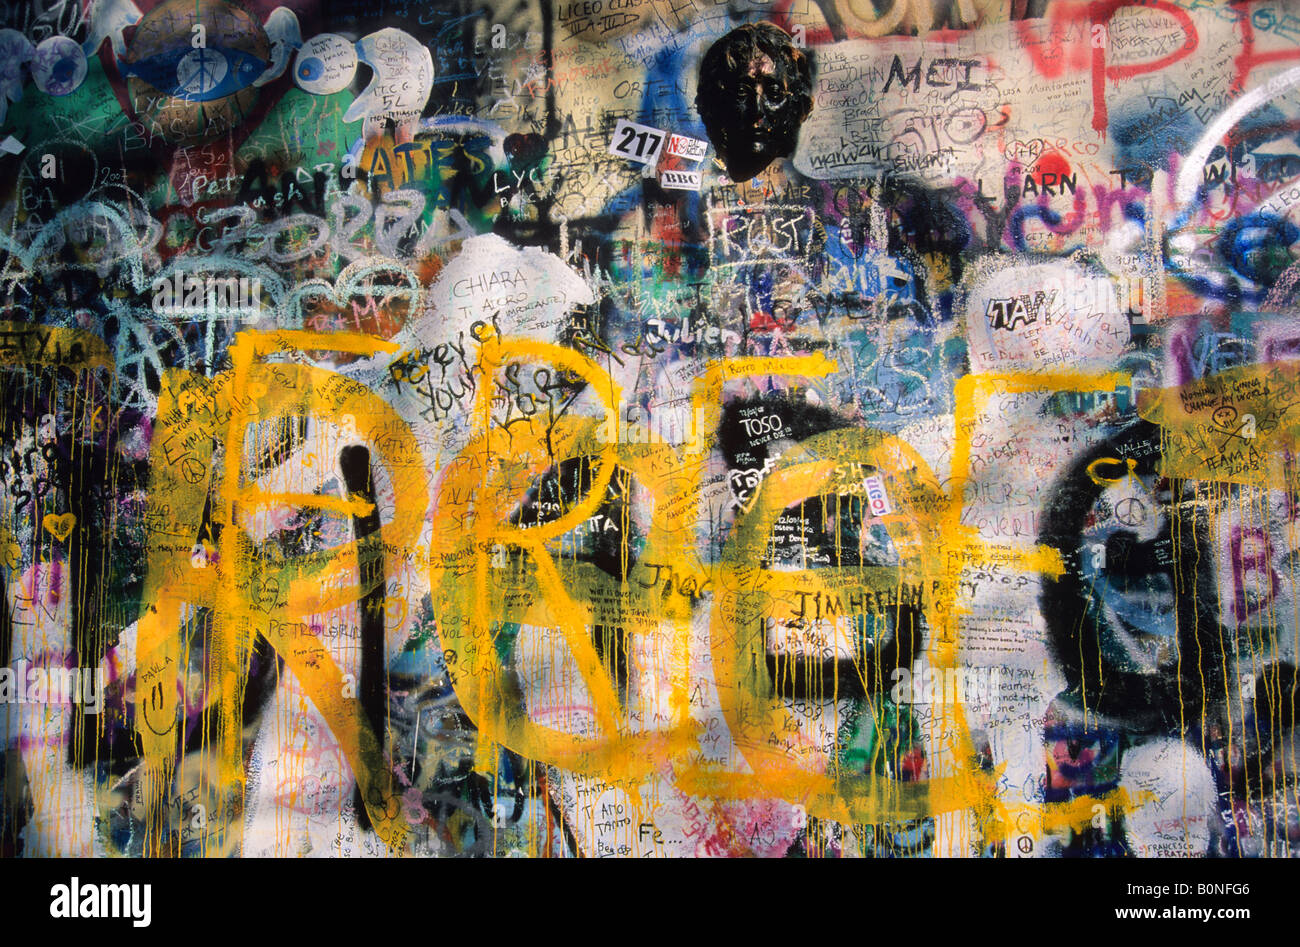 Lennon Wall Stock Photos & Lennon Wall Stock Images - Alamy